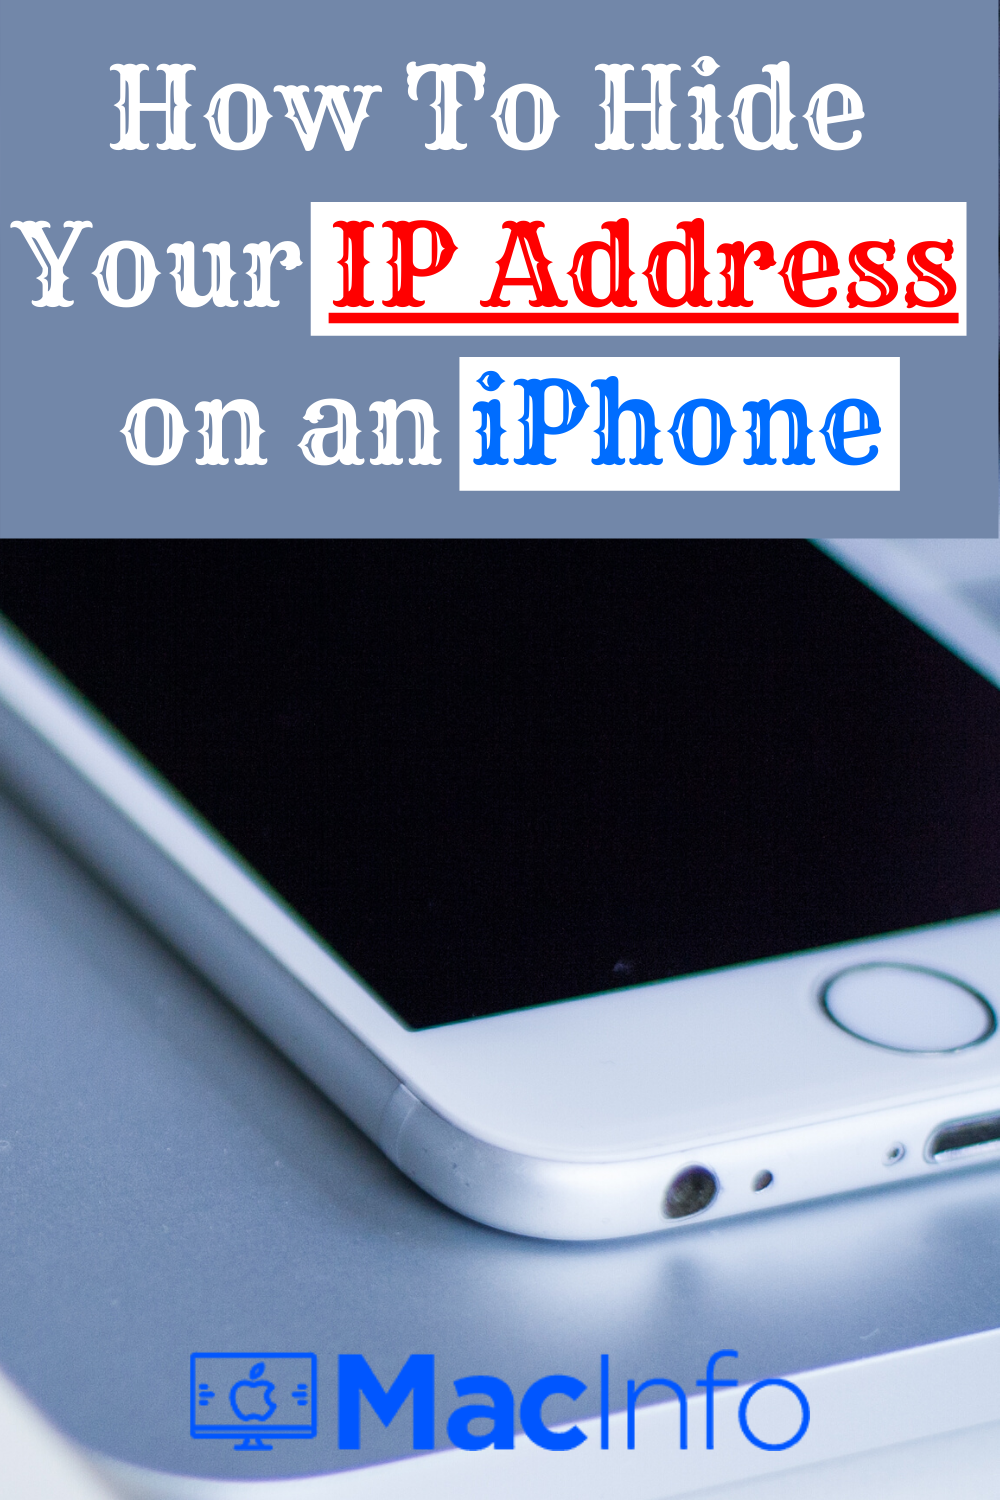 a16e77665f82b6eff34ef304faddaaf3 - How To Change Location On Iphone Vpn